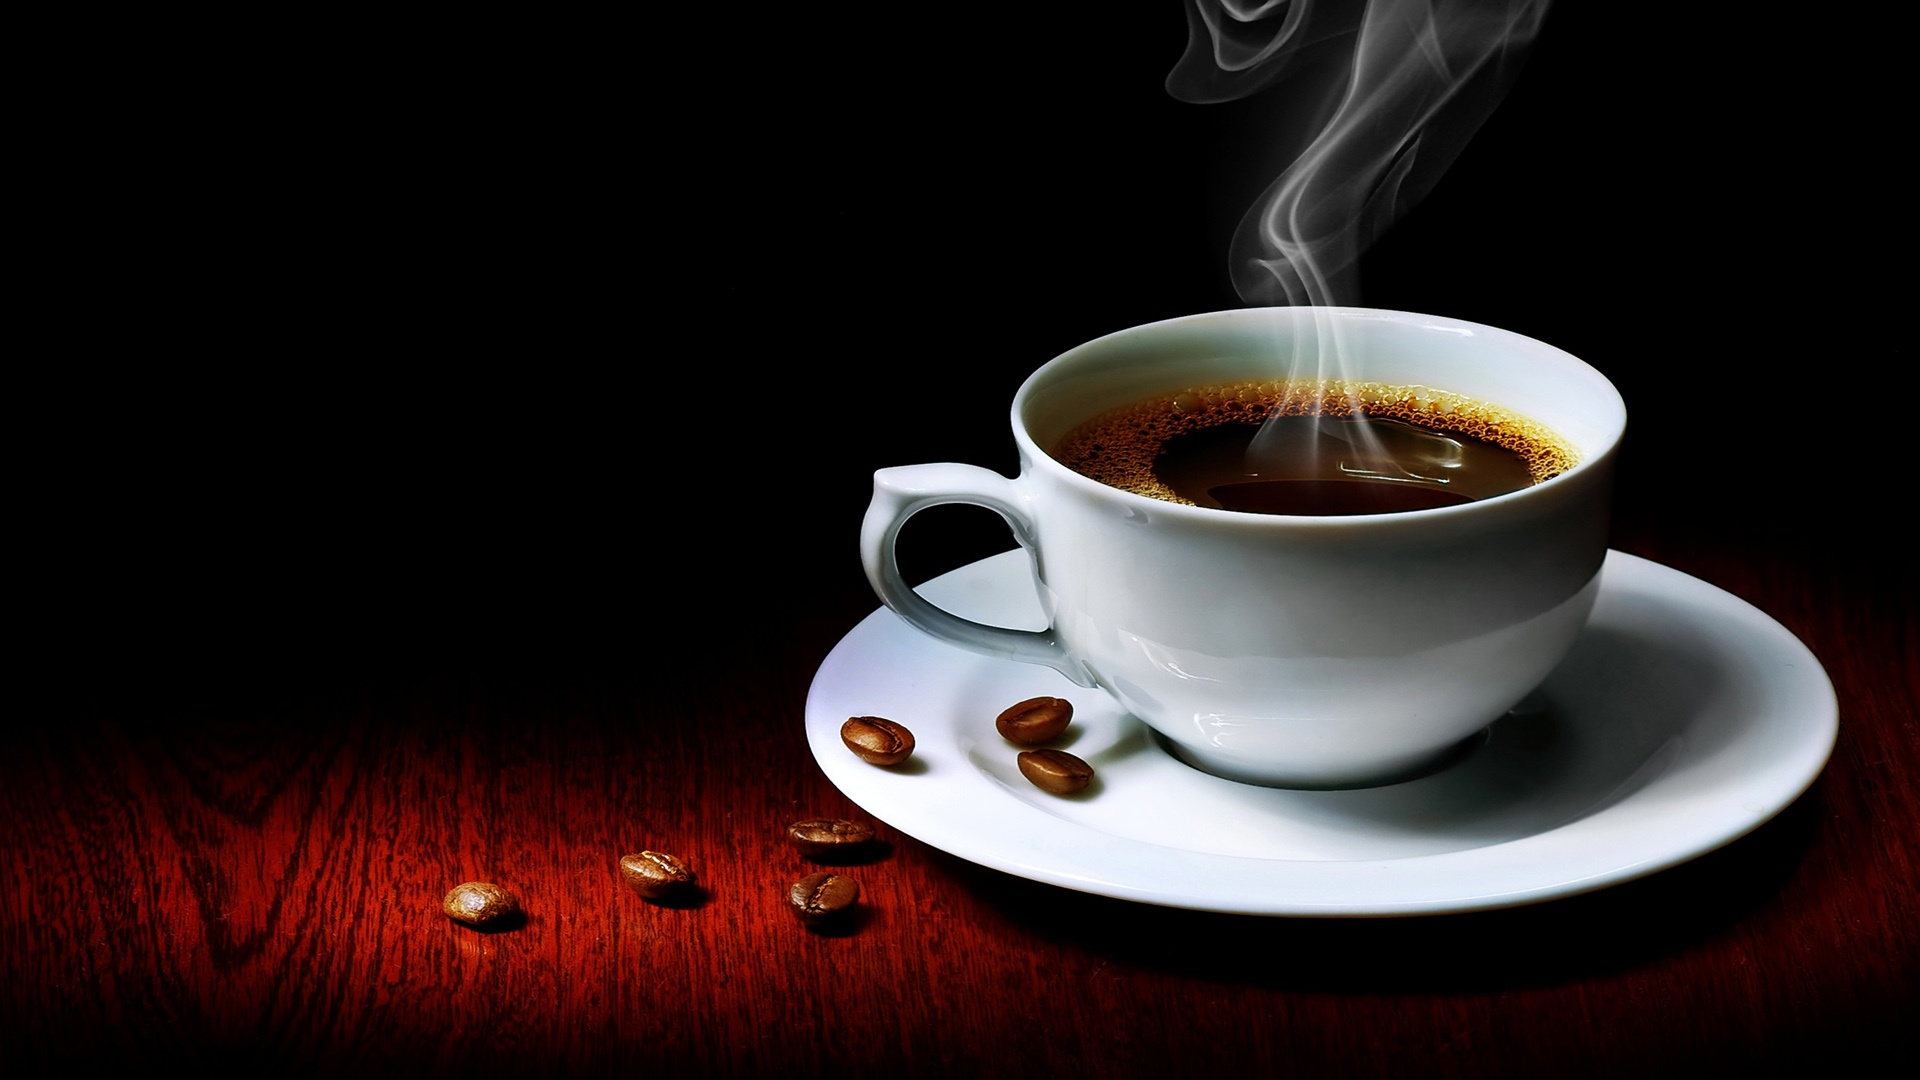 Coffee Hd Wallpapers | Free Coffee Cup Hd Wallpapers | Coffee Beans .